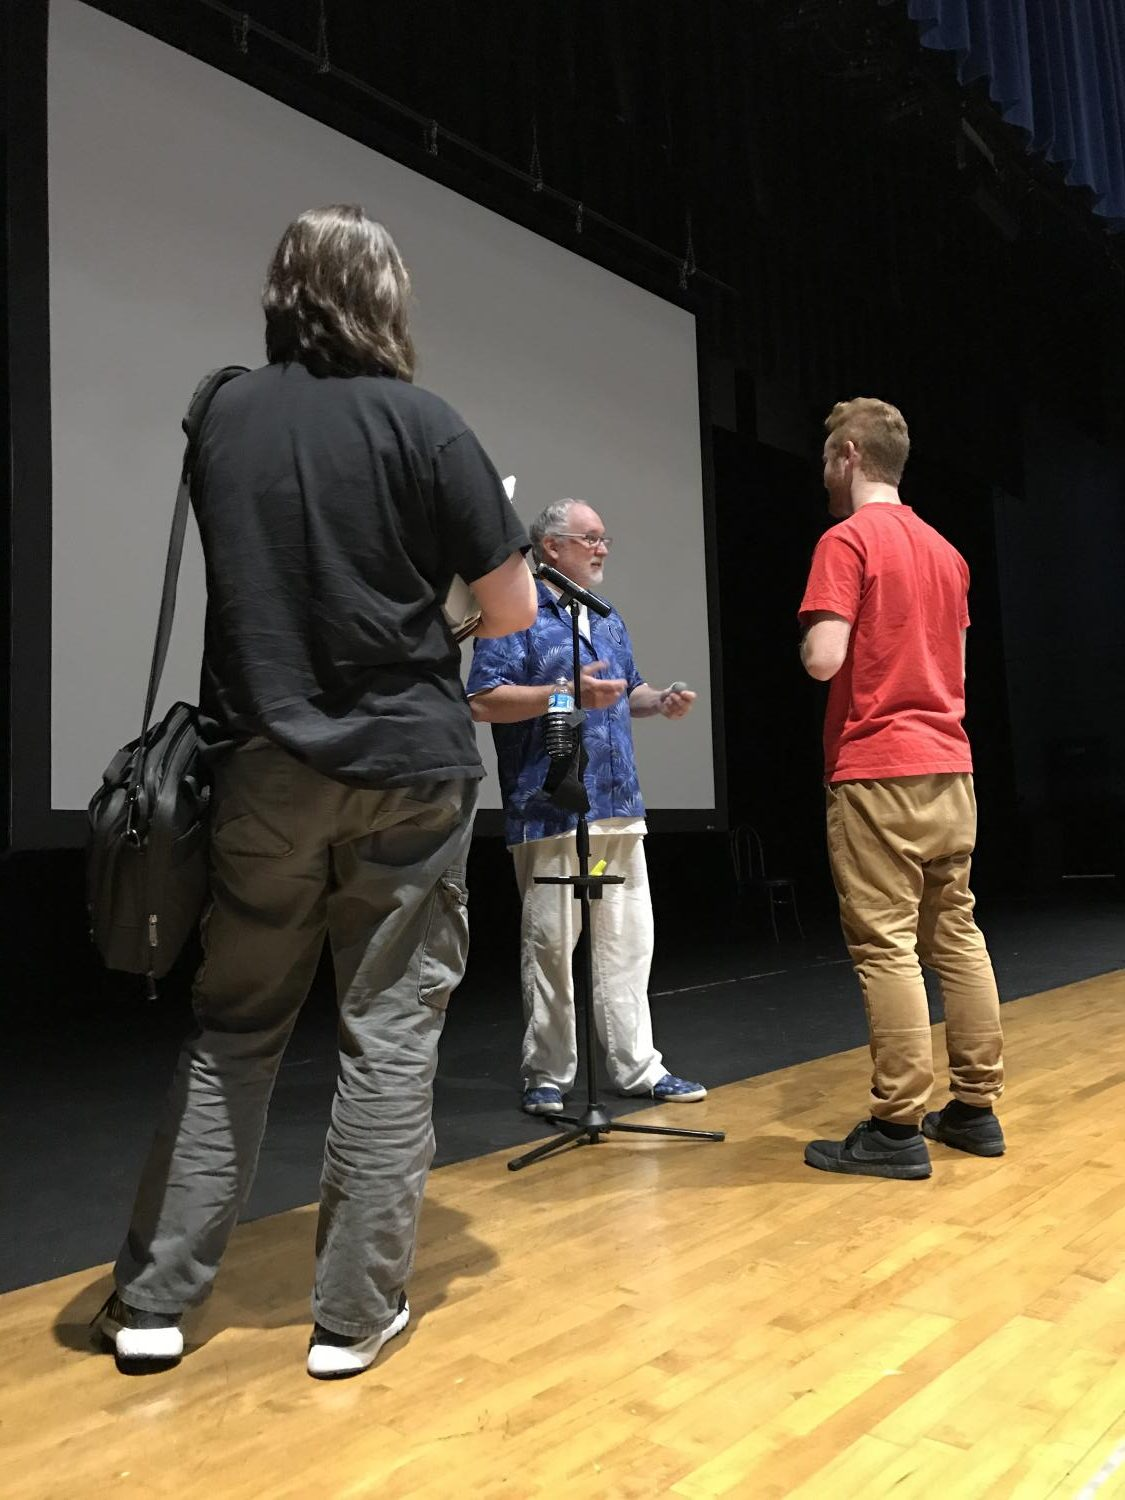 Motivational speaker Kevin Wanzer speaks to a couple of students after his three presentations in the large auditorium. Mr. Wanzer delivered a message of treating people with kindness and understanding.